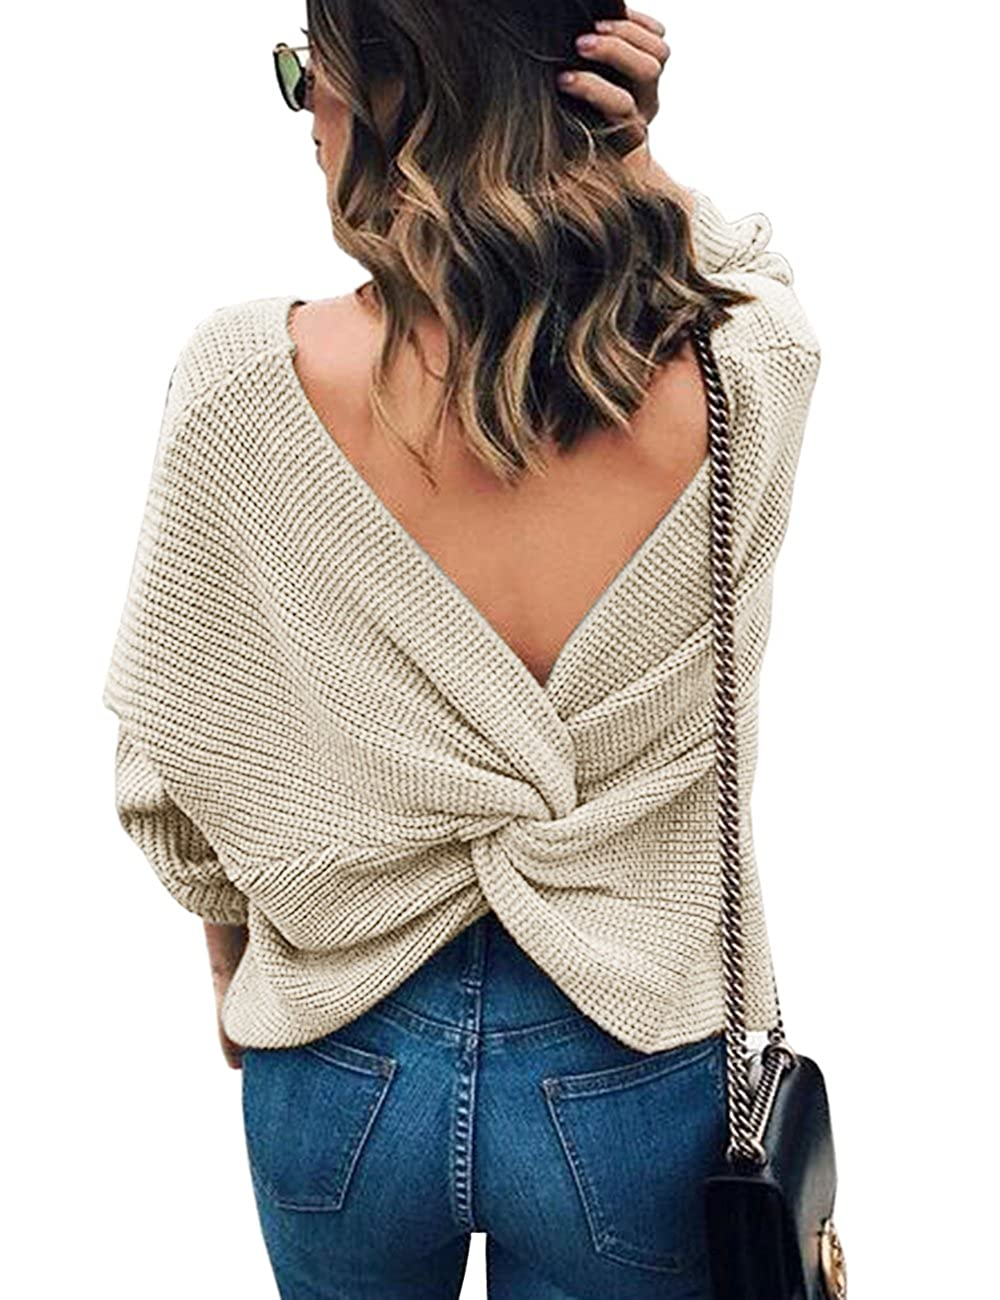 f80bcbf627 Sexyshine Women s Casual V Neck Criss Cross Backless Long Batwing Sleeve  Loose Knitted Sweater Pullovers